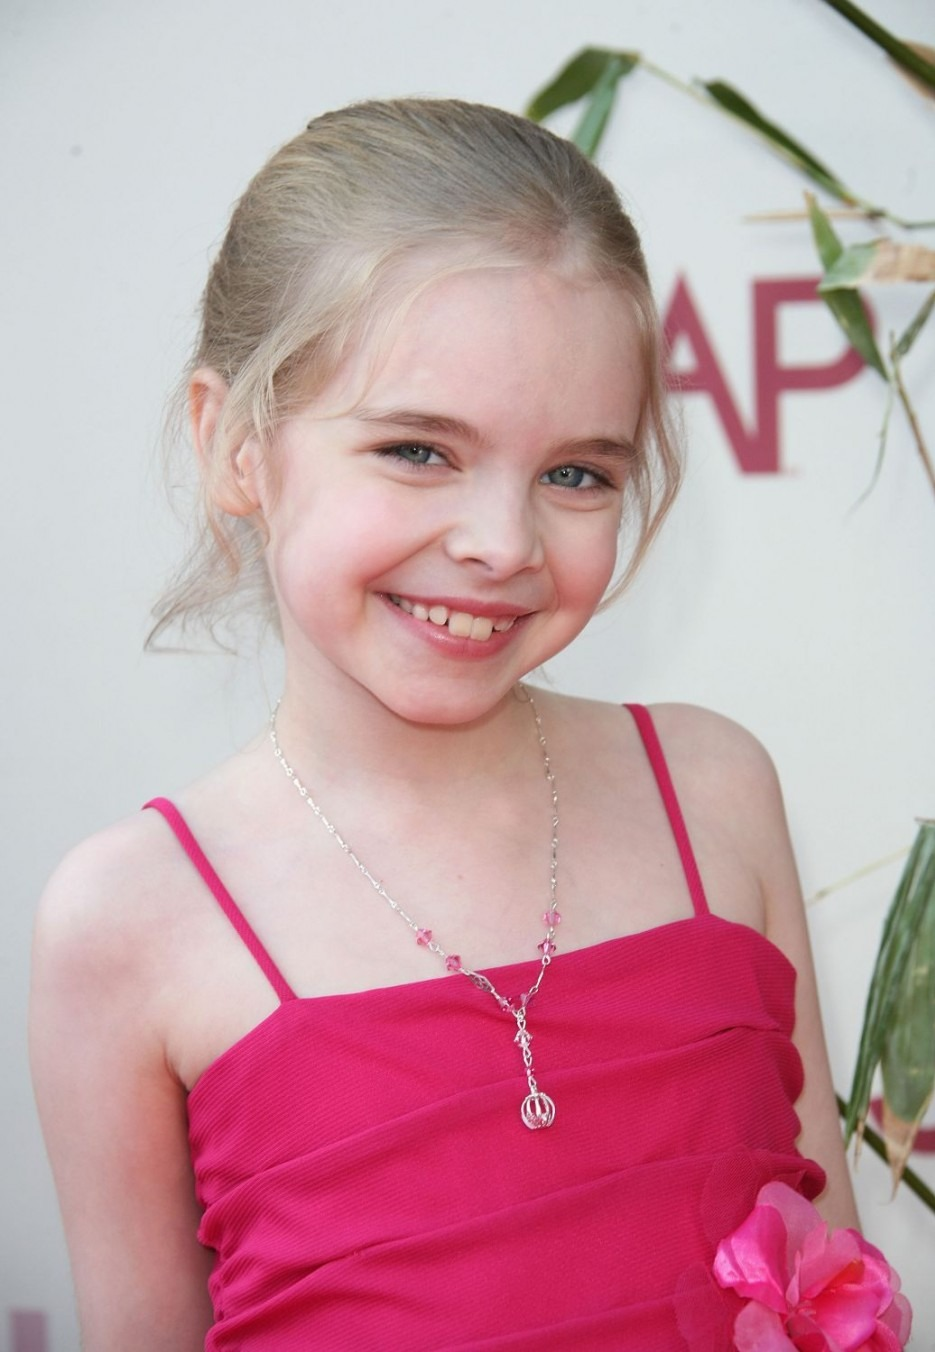 Young actress Darcy Rose is wearing pink dress and smiling in front of the camera.